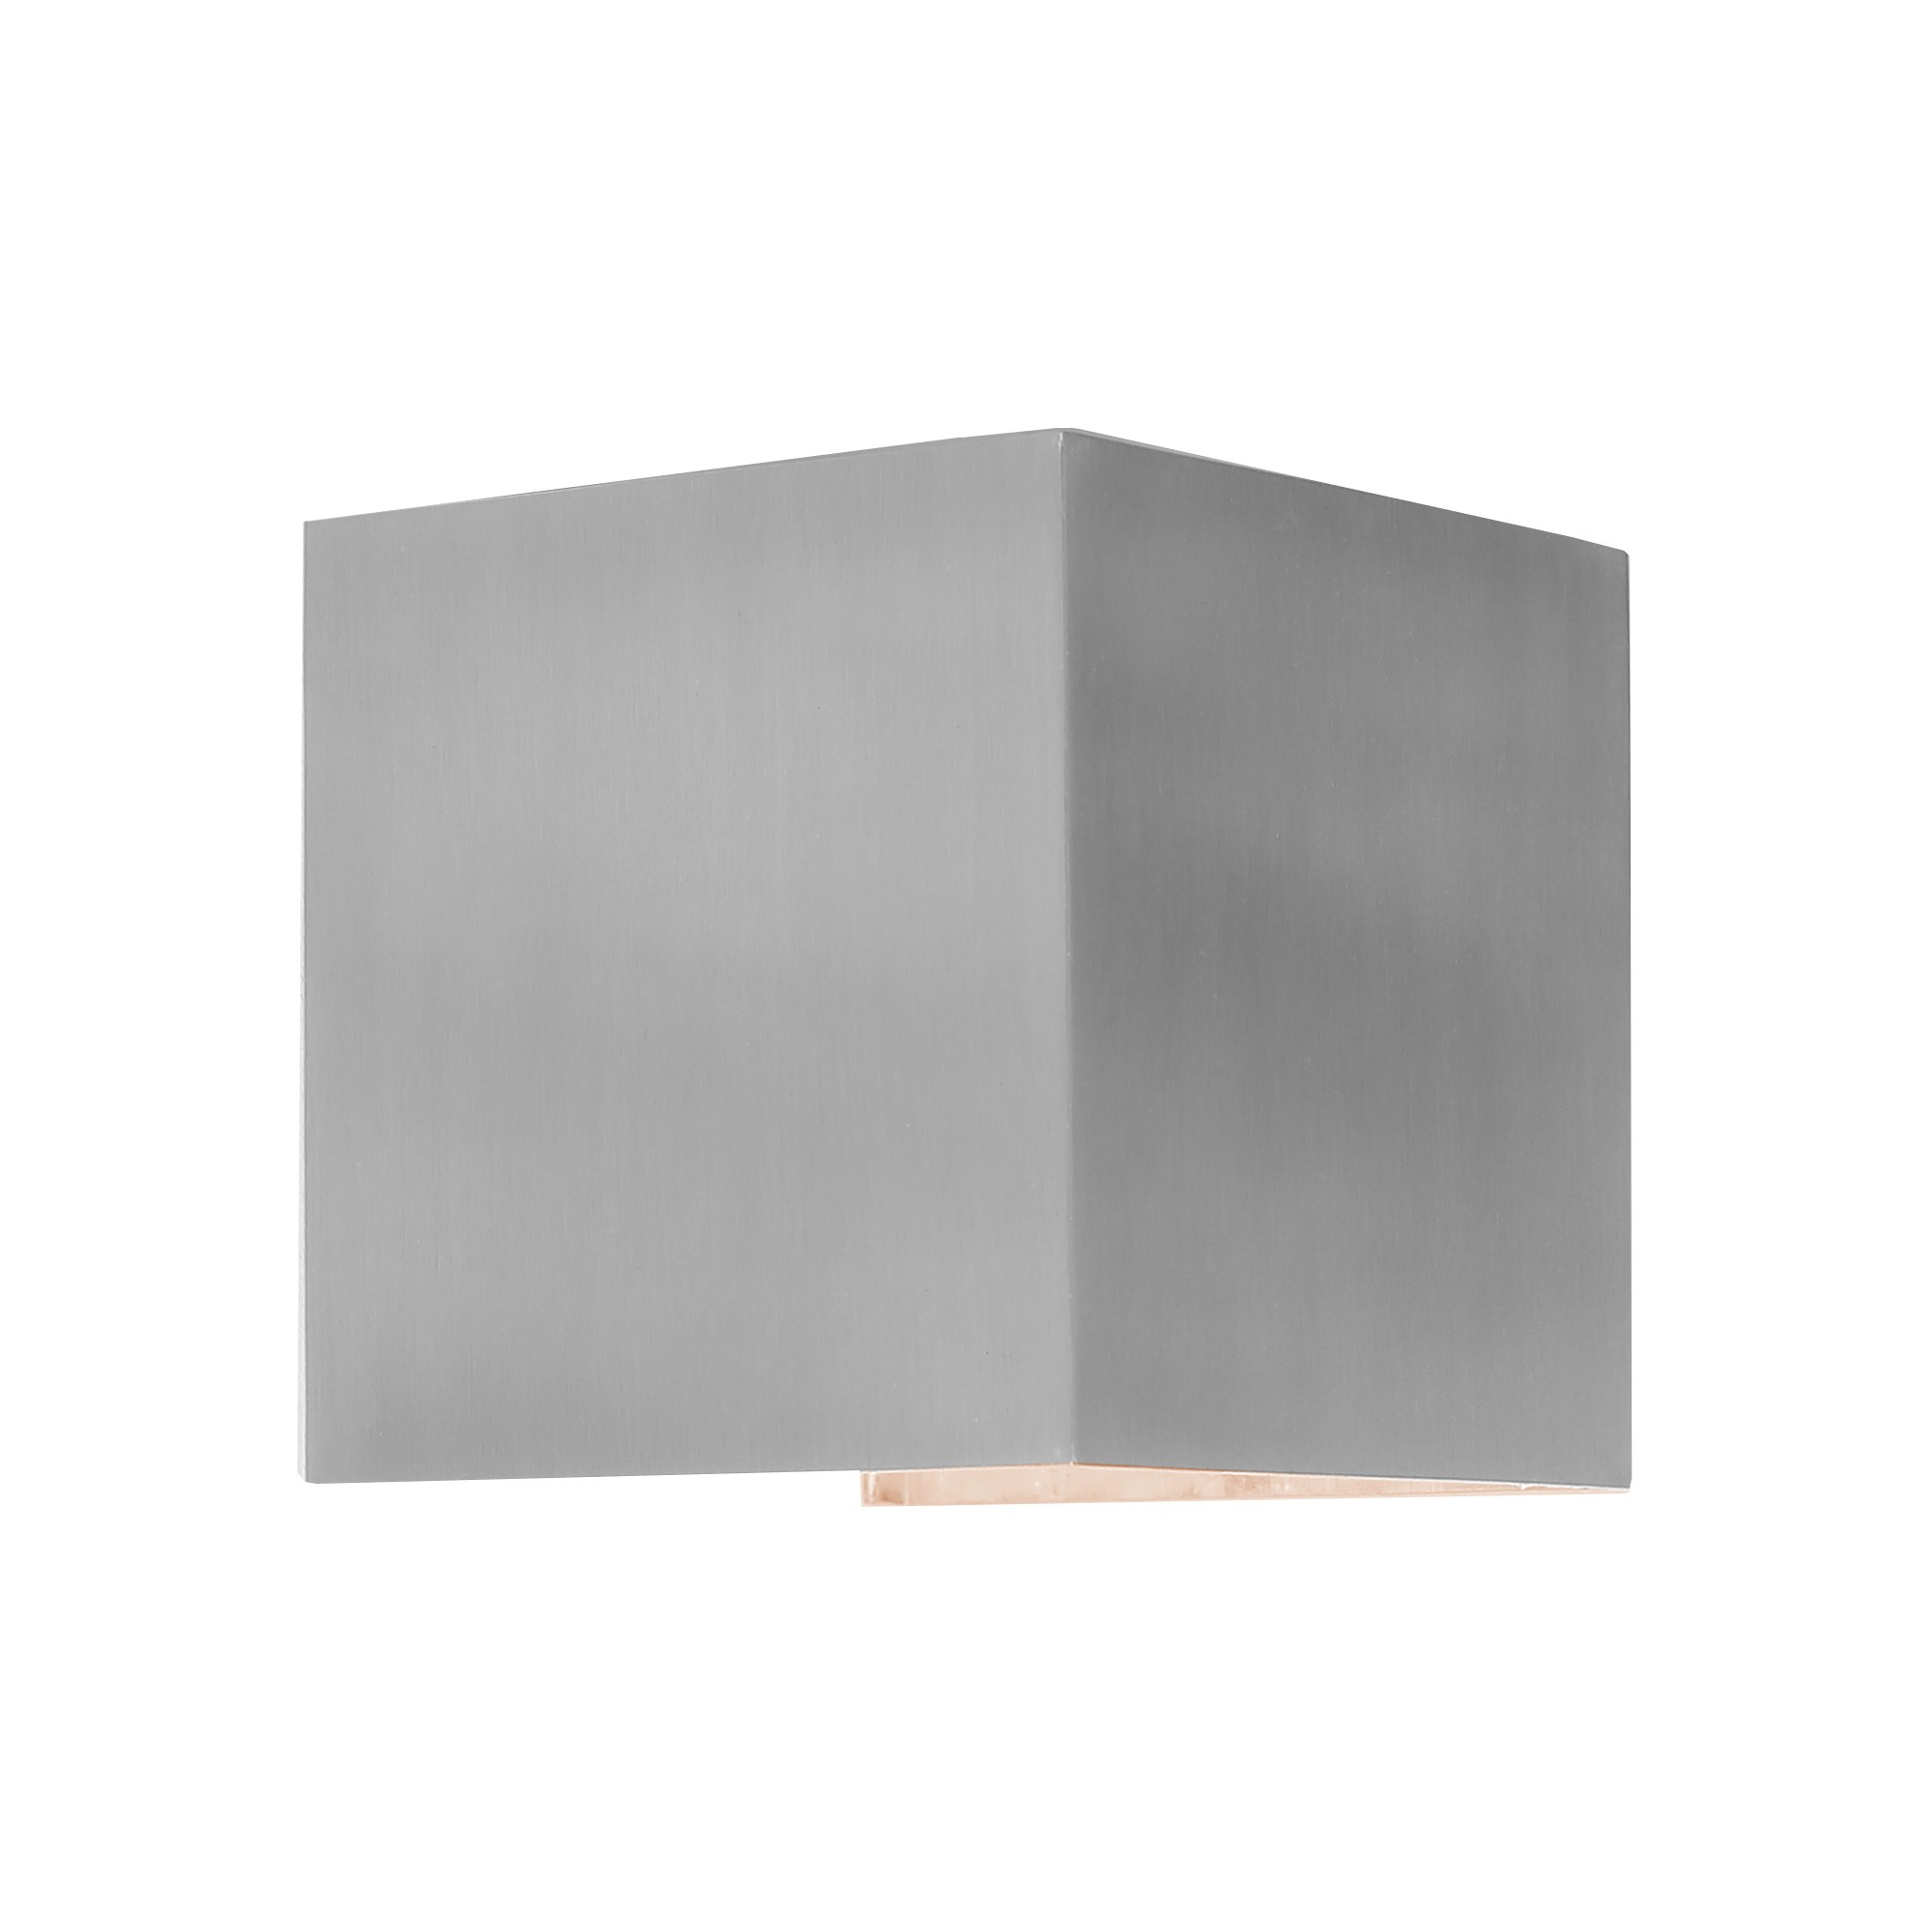 Glenelg IP54 Exterior LED Wall Light, Silver